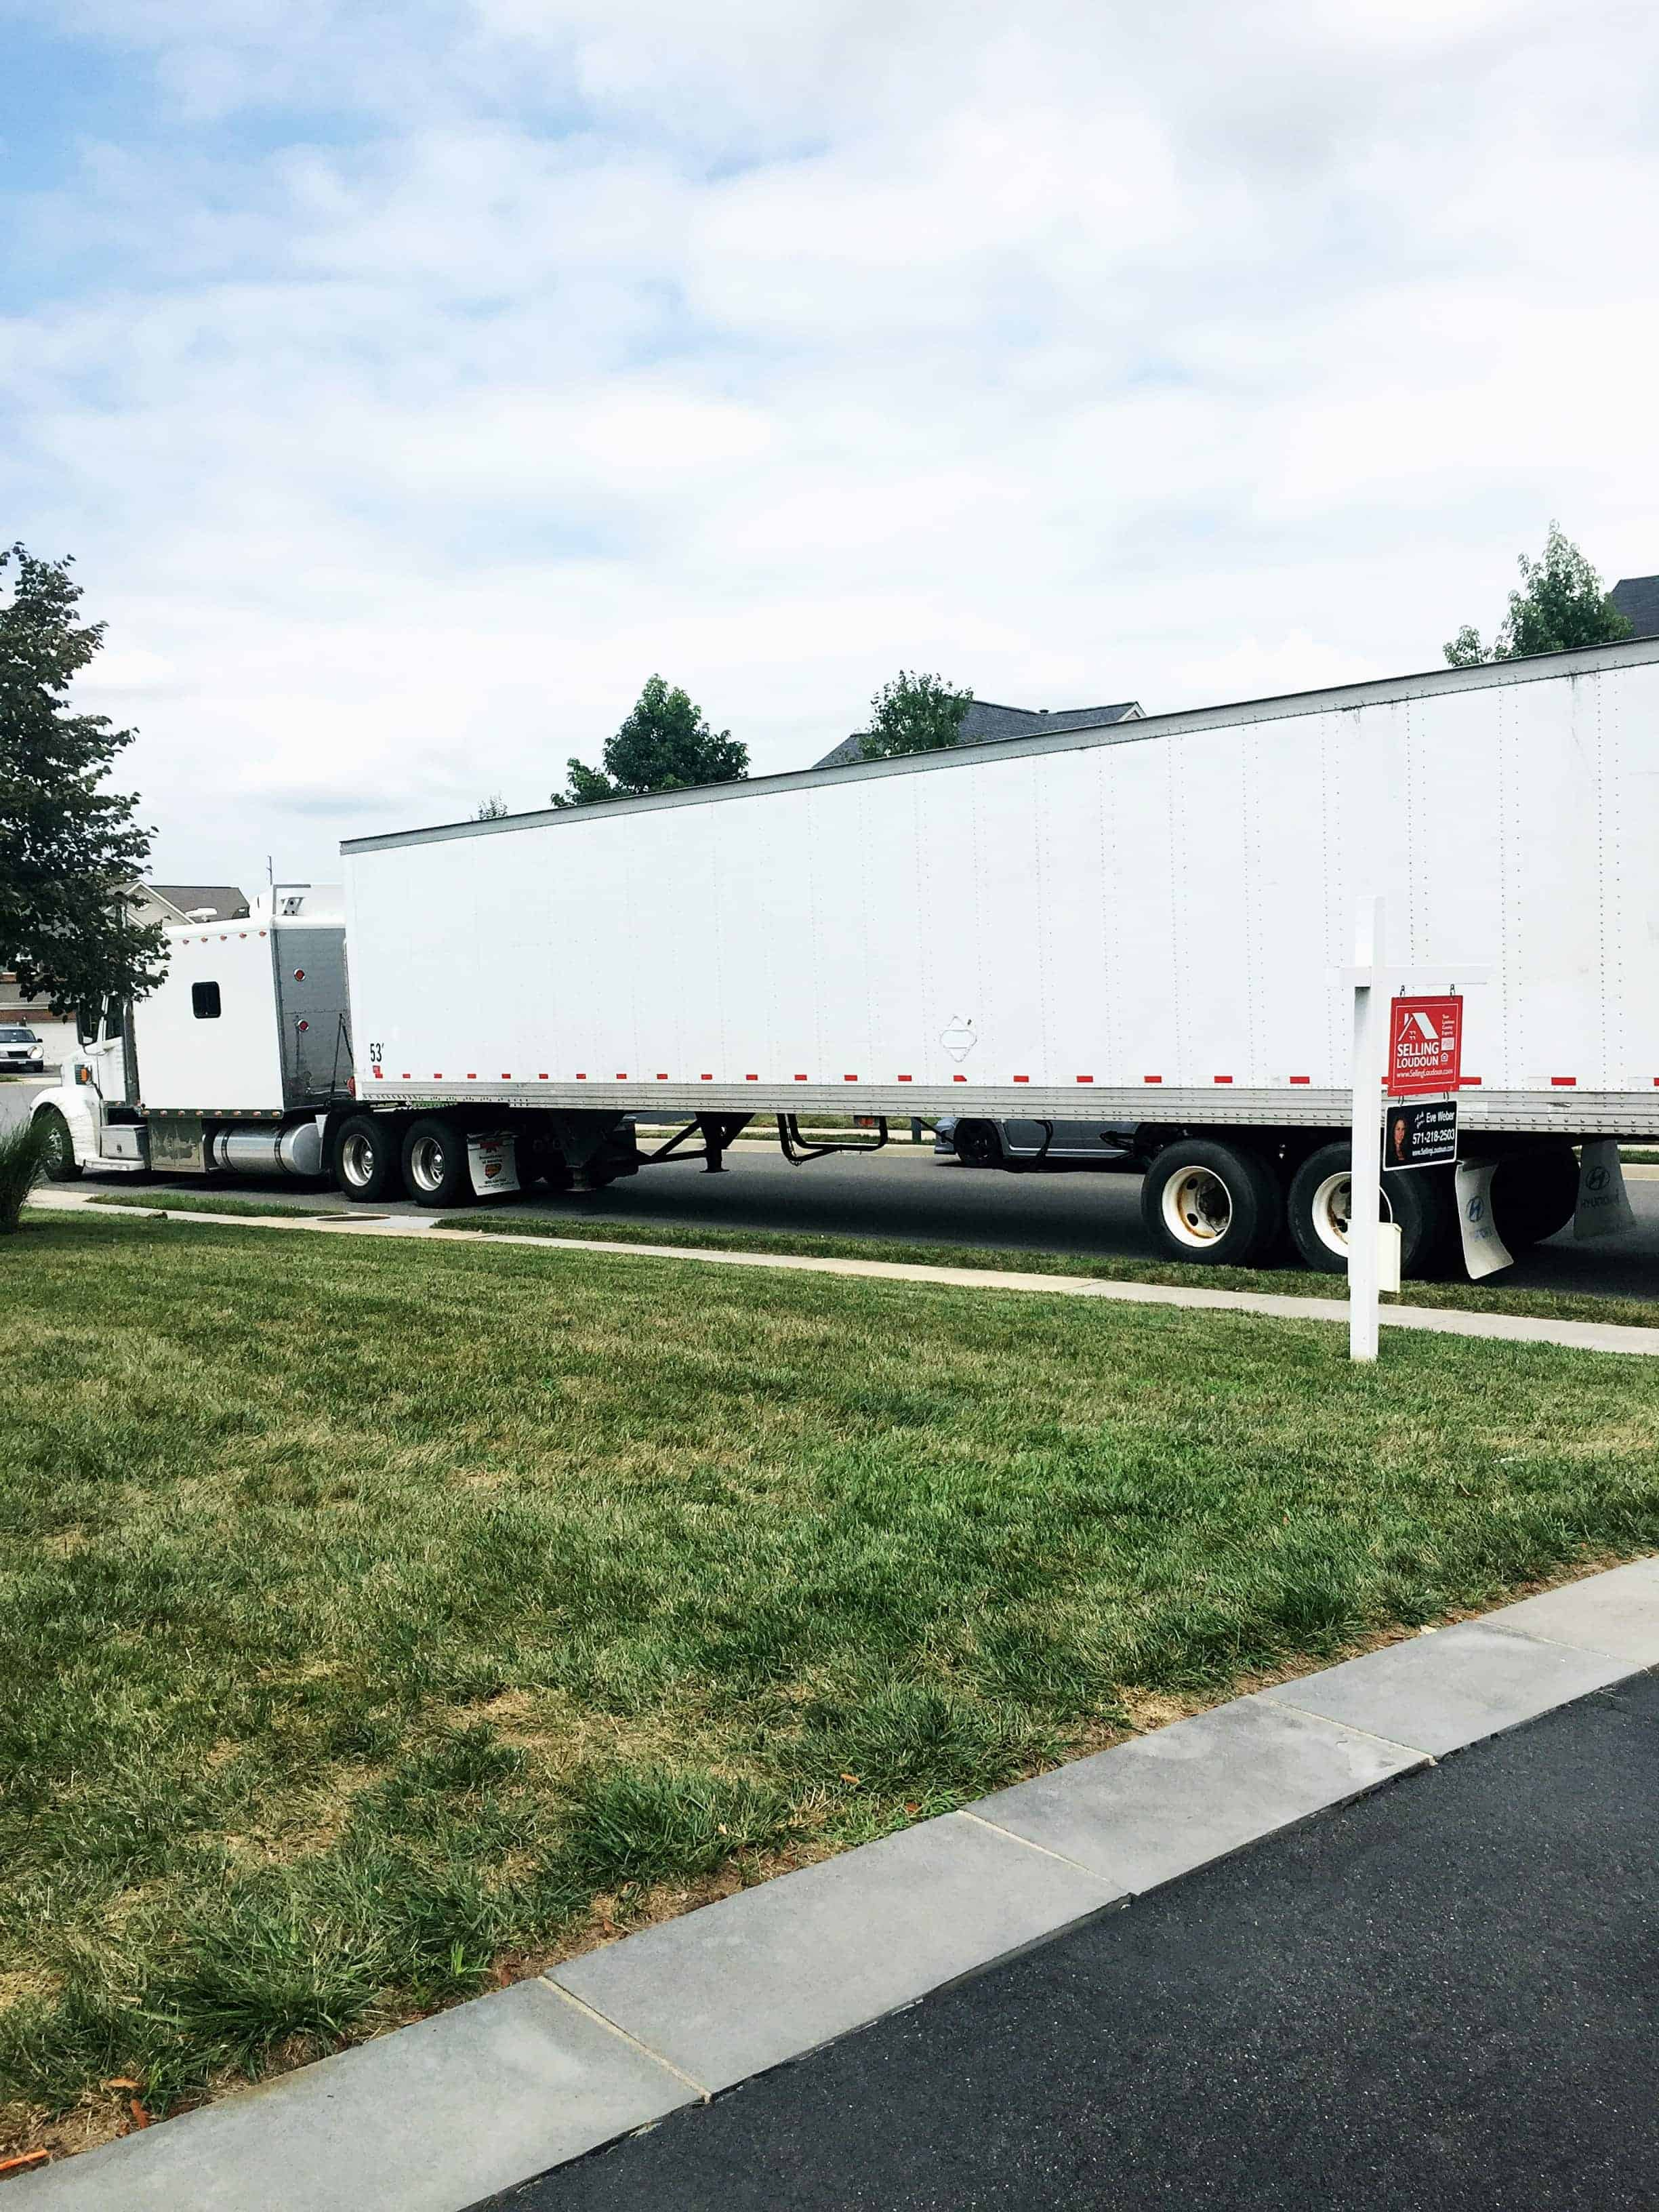 My best moving tips from the last 3 moves I've done with my large family. Learn from my mistakes!